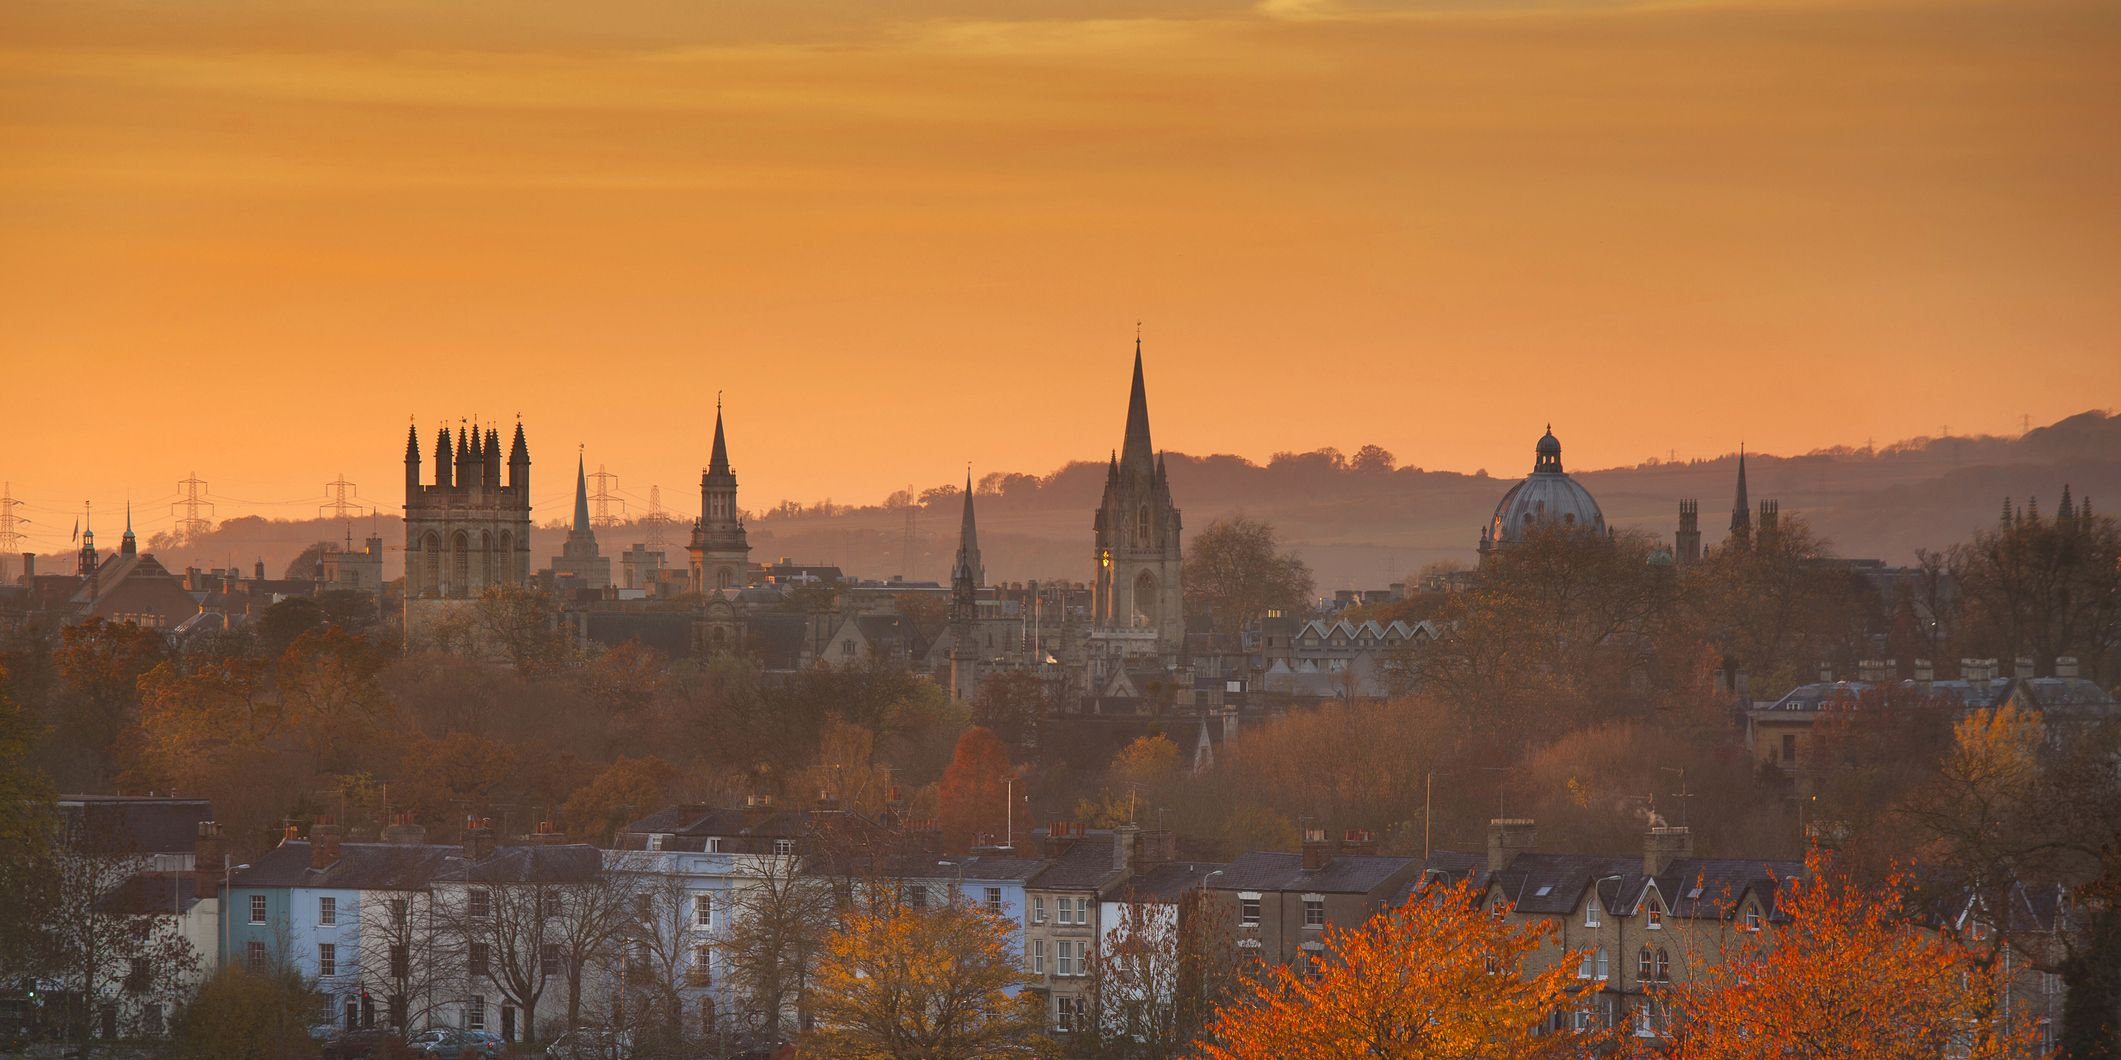 Oxford Spires in golden light, Skyline de Oxford en otoño